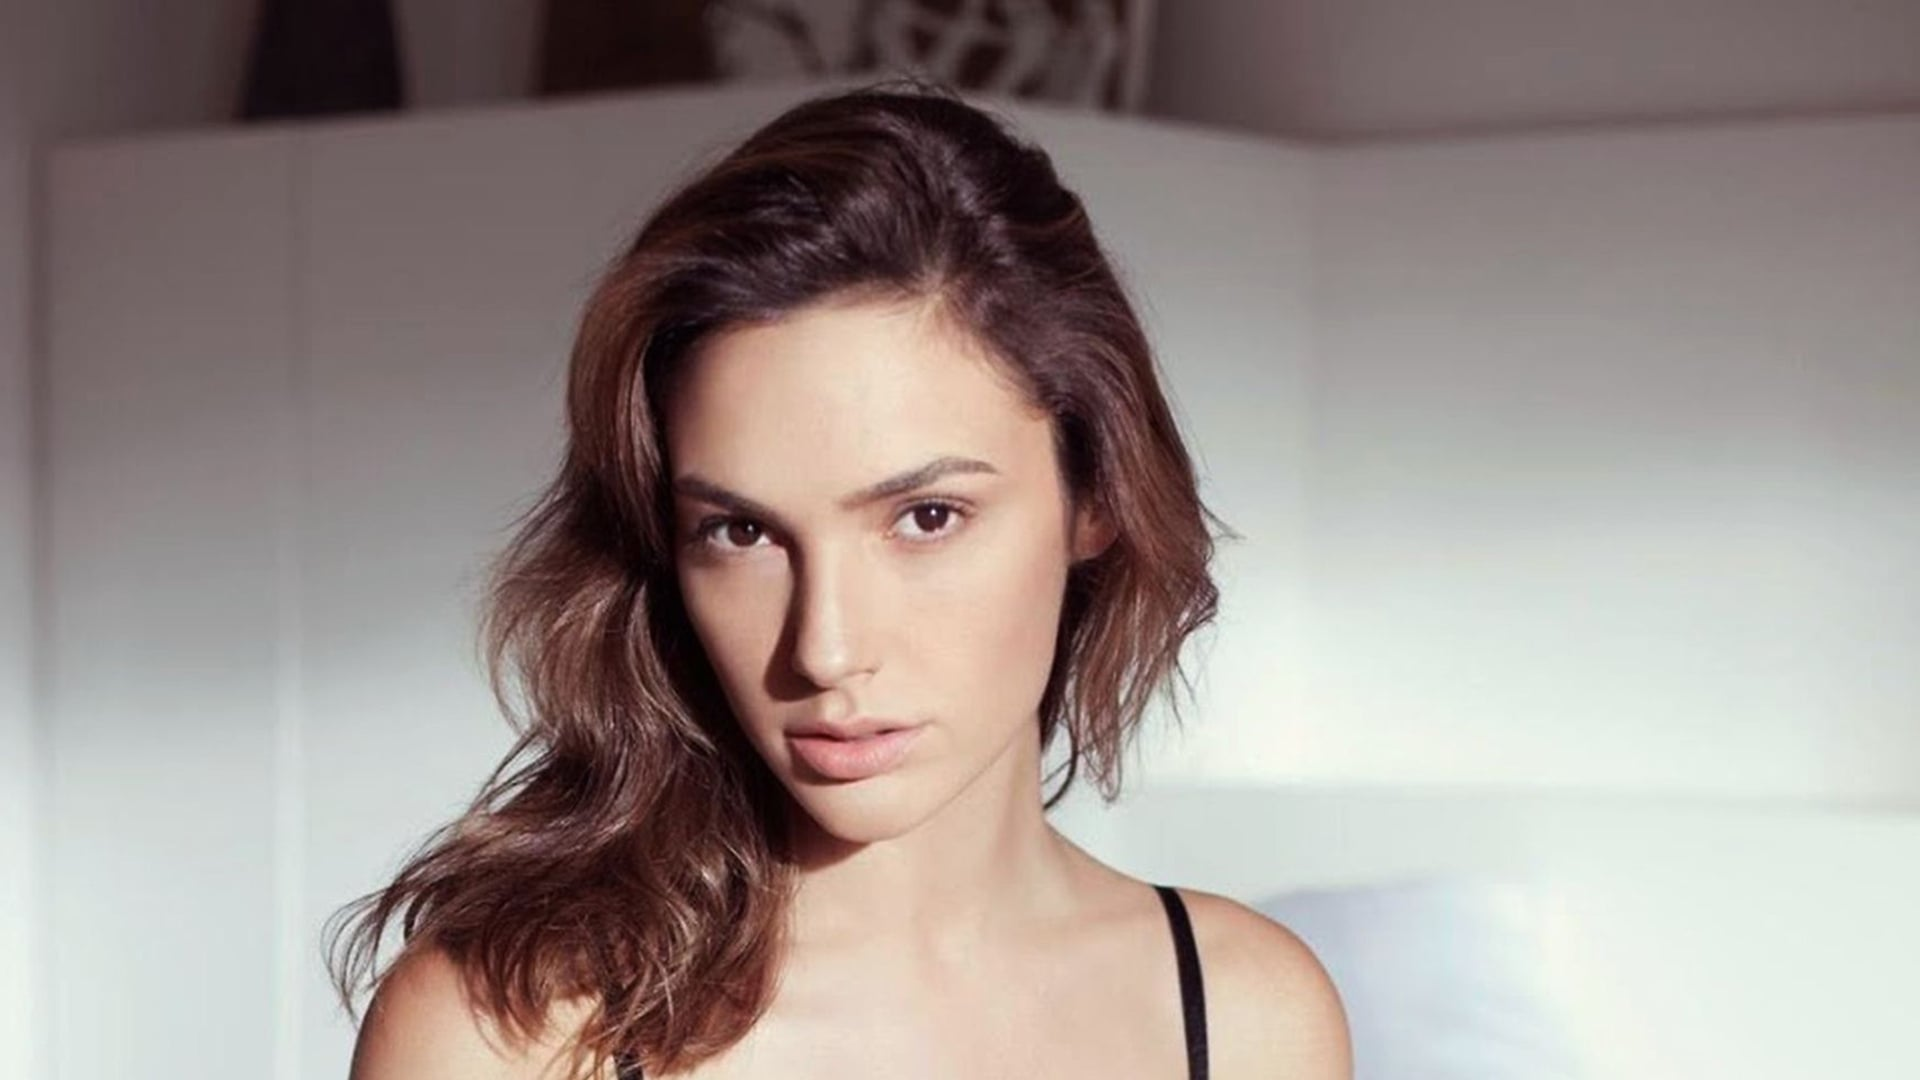 Gal Gadot Wallpaper Hd Posted By Christopher Cunningham